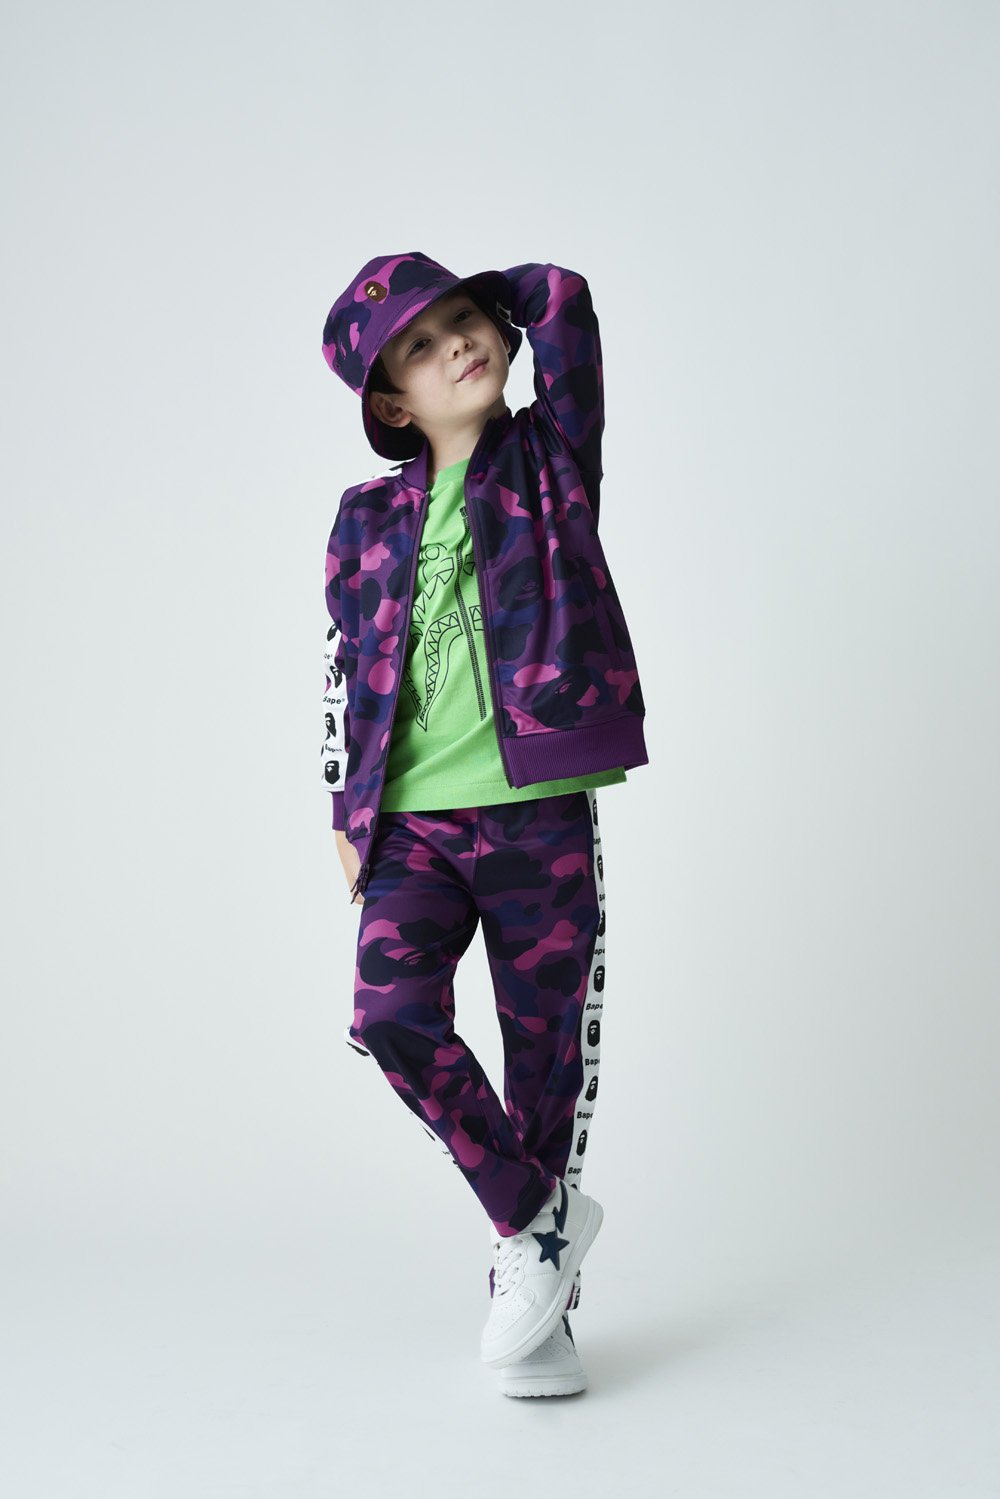 2020 AW KIDS'/JUNIORS' LOOKBOOK 16